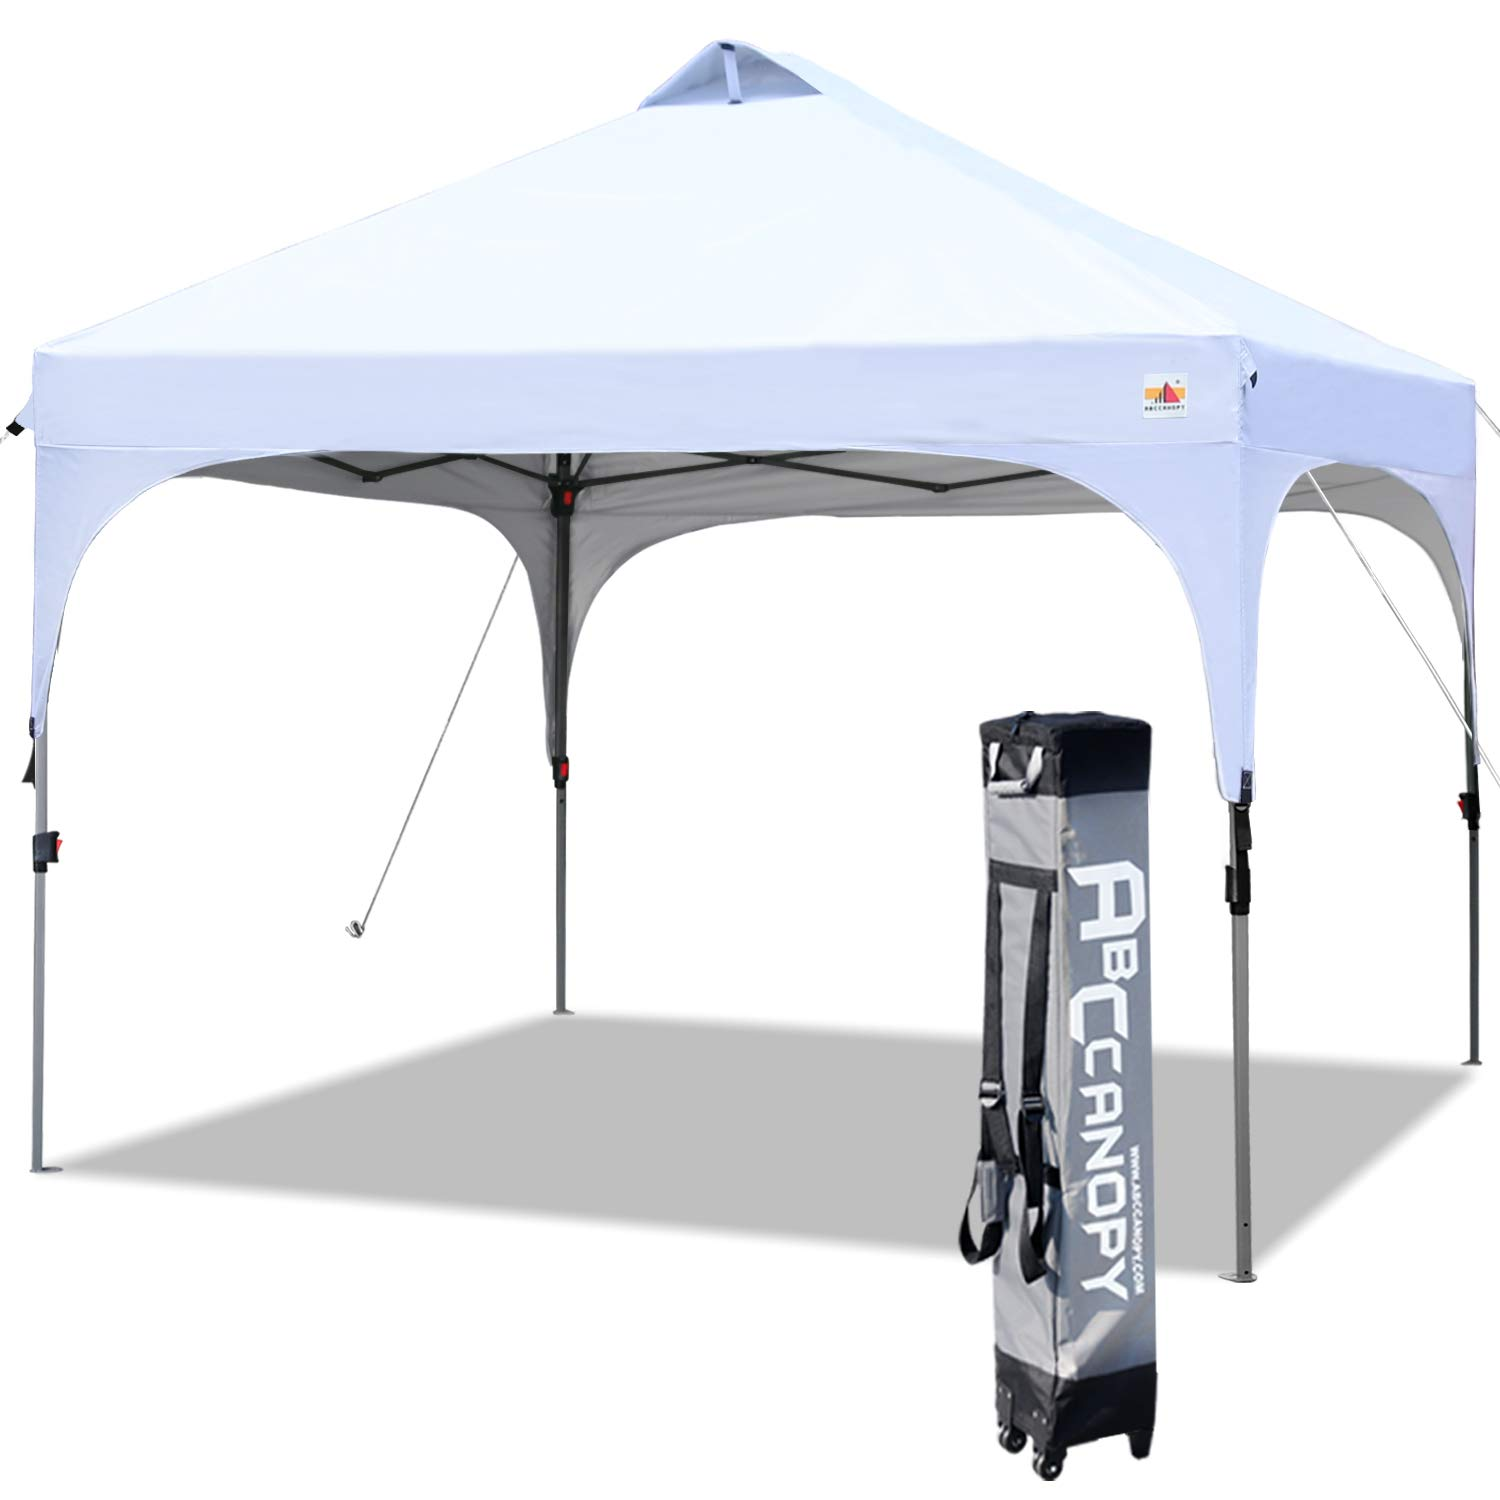 ABCCANOPY Canopy Tent 10×10 Pop Up Canopy Outdoor Canopies Portable Tent Popup Beach Canopy Shade Canopy Tent with Wheeled Carry Bag Bonus 4 Weight Bags, 4 x Ropes 4 x Stakes, White